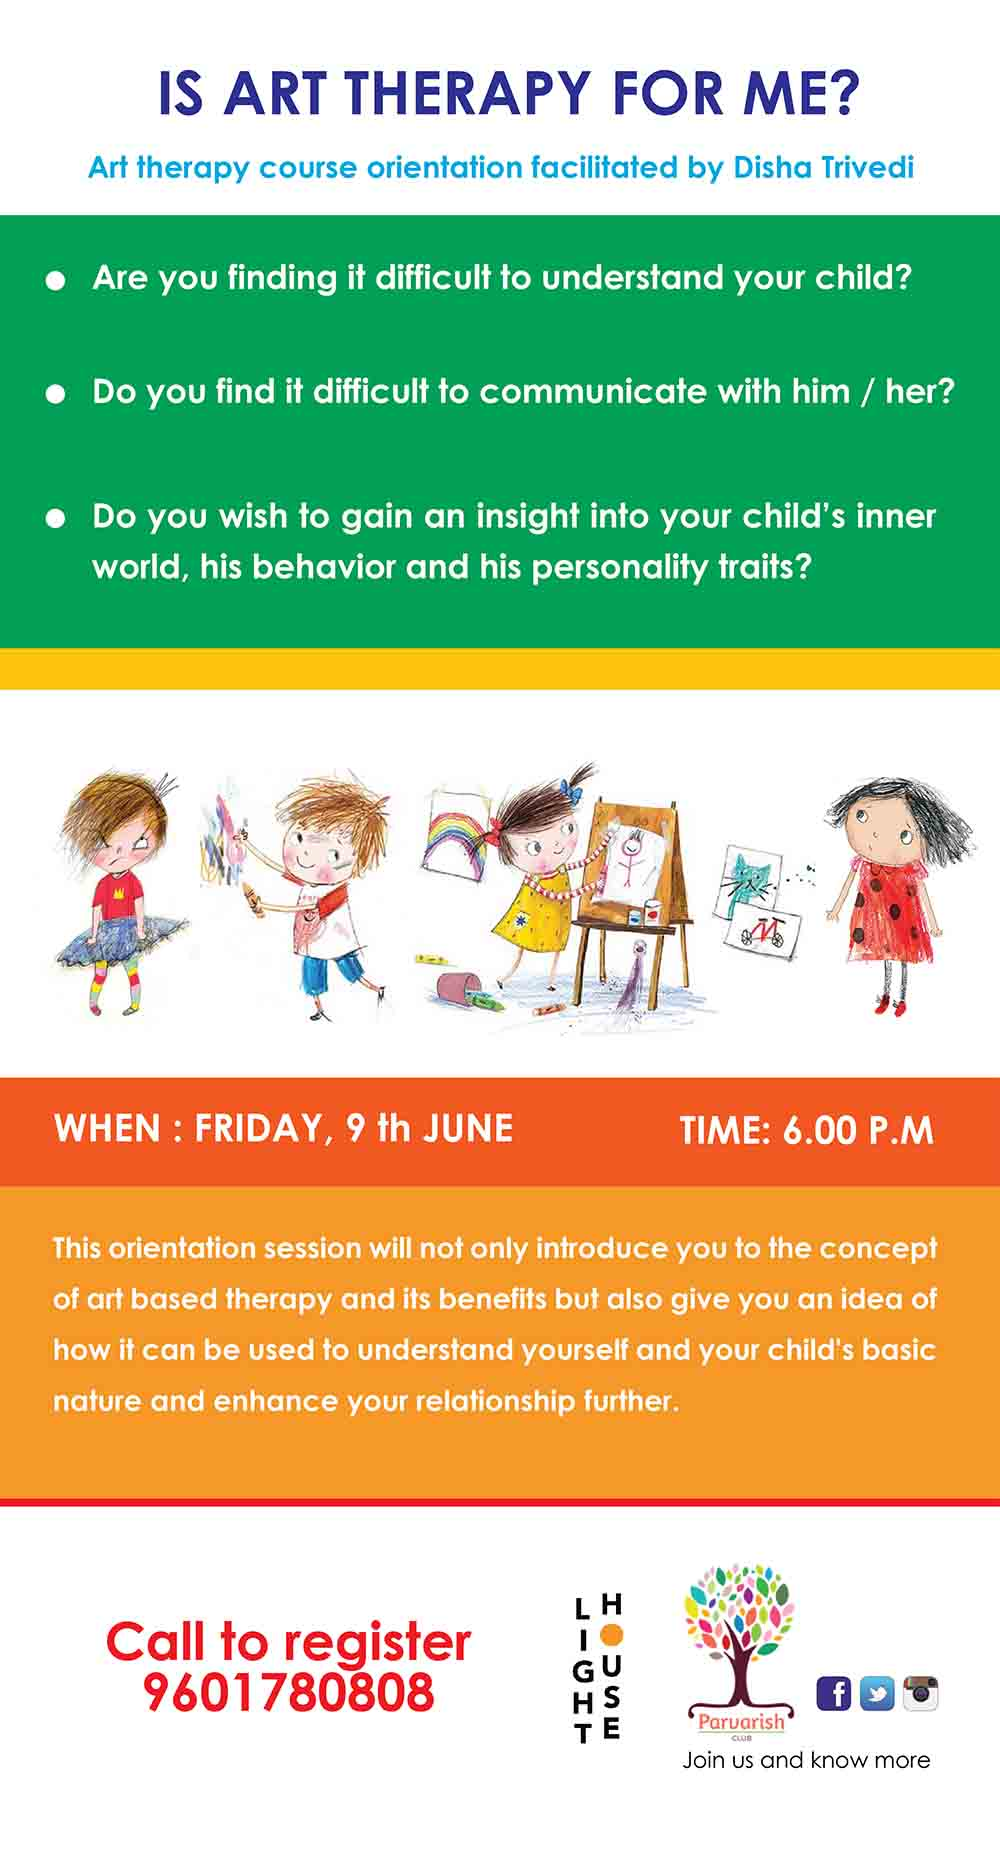 Art therapy to understand childs behaviour workshops in ahmedabad art therapy parvarish club workshops for kids workshops in ahmedabad solutioingenieria Image collections